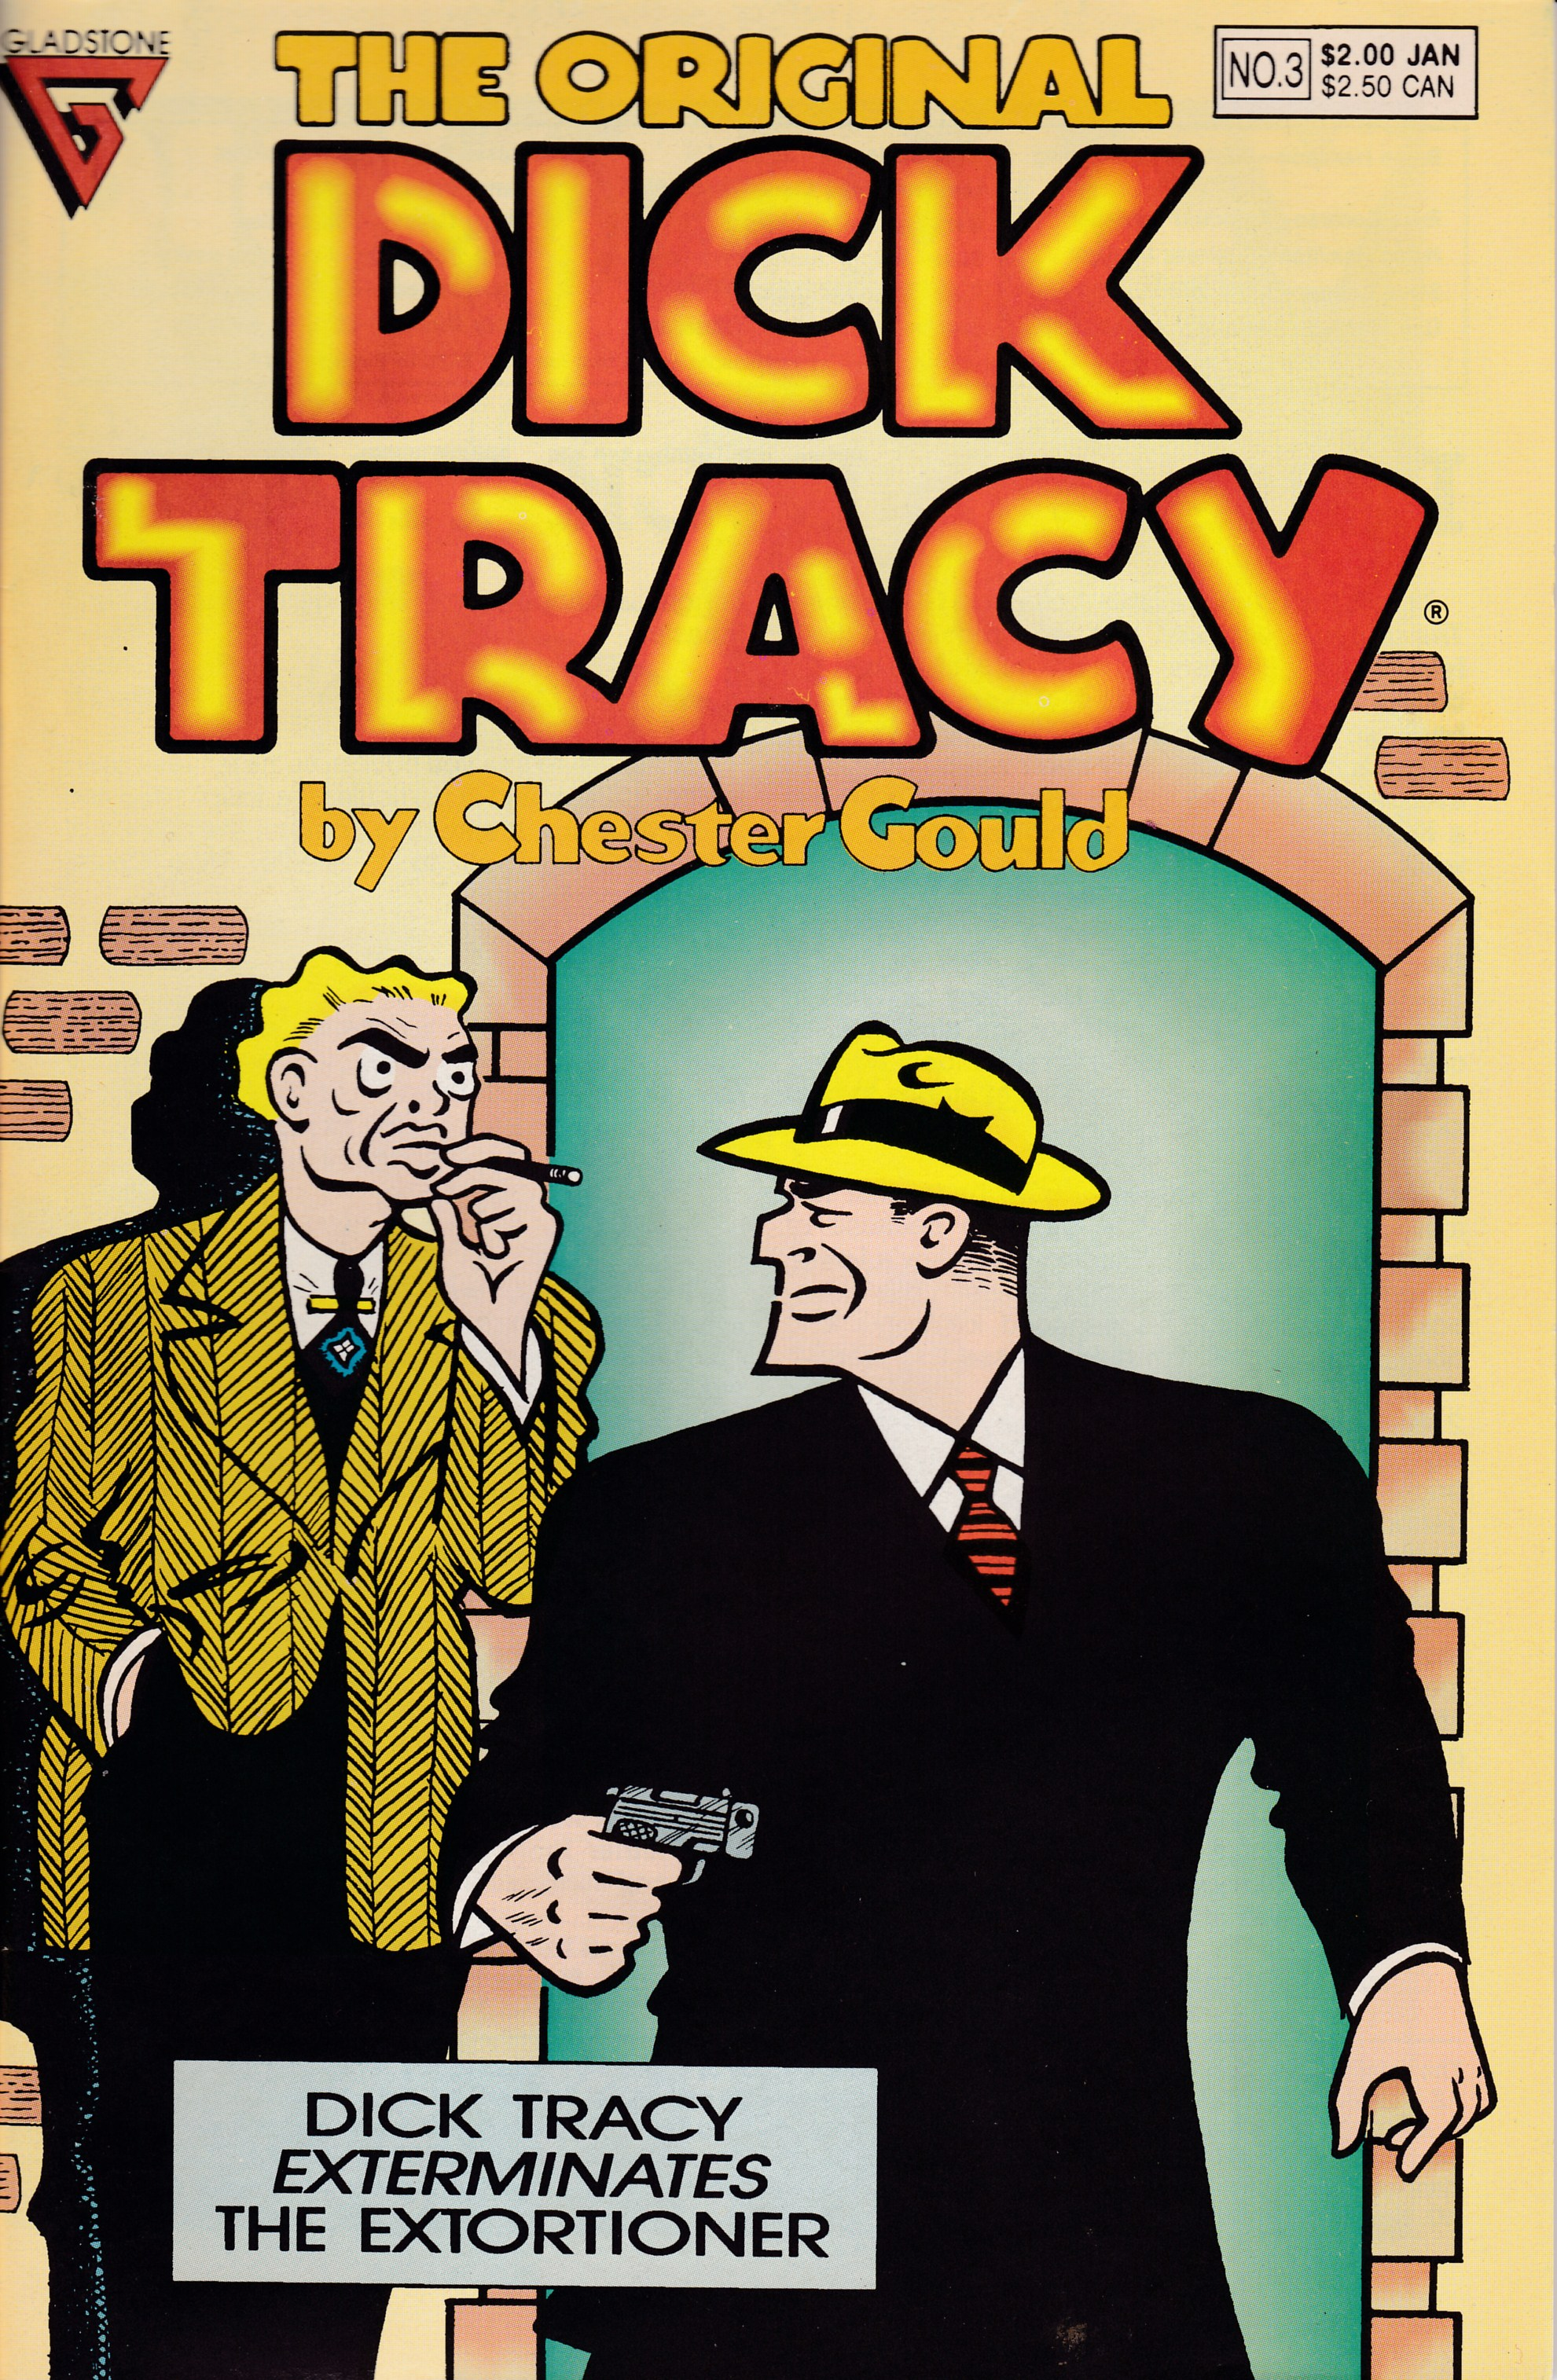 Dick tracy reprints